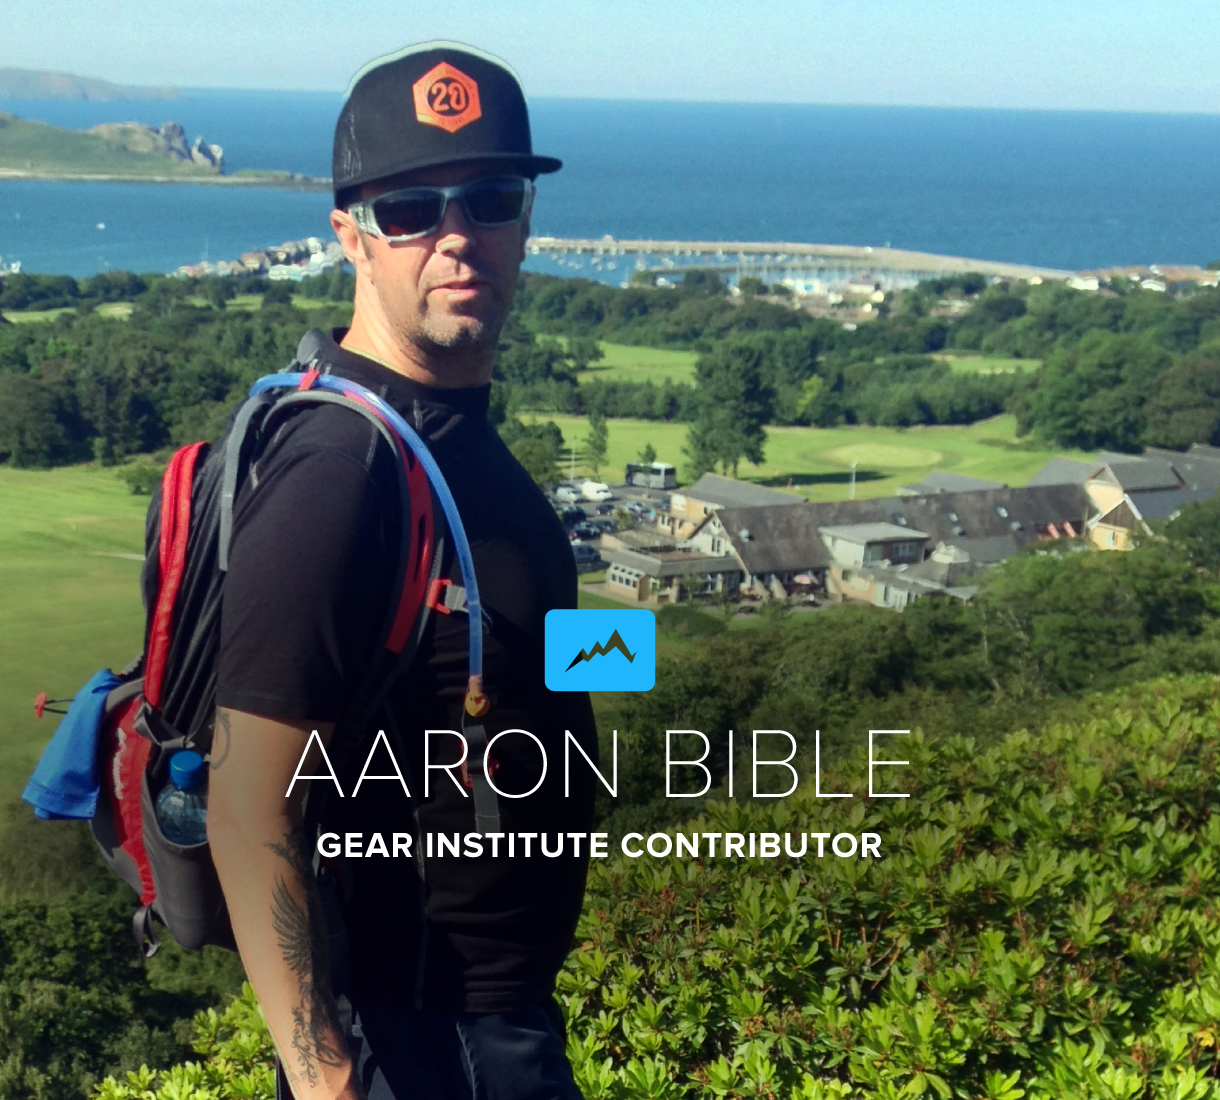 Aaron Bible Gear Institute